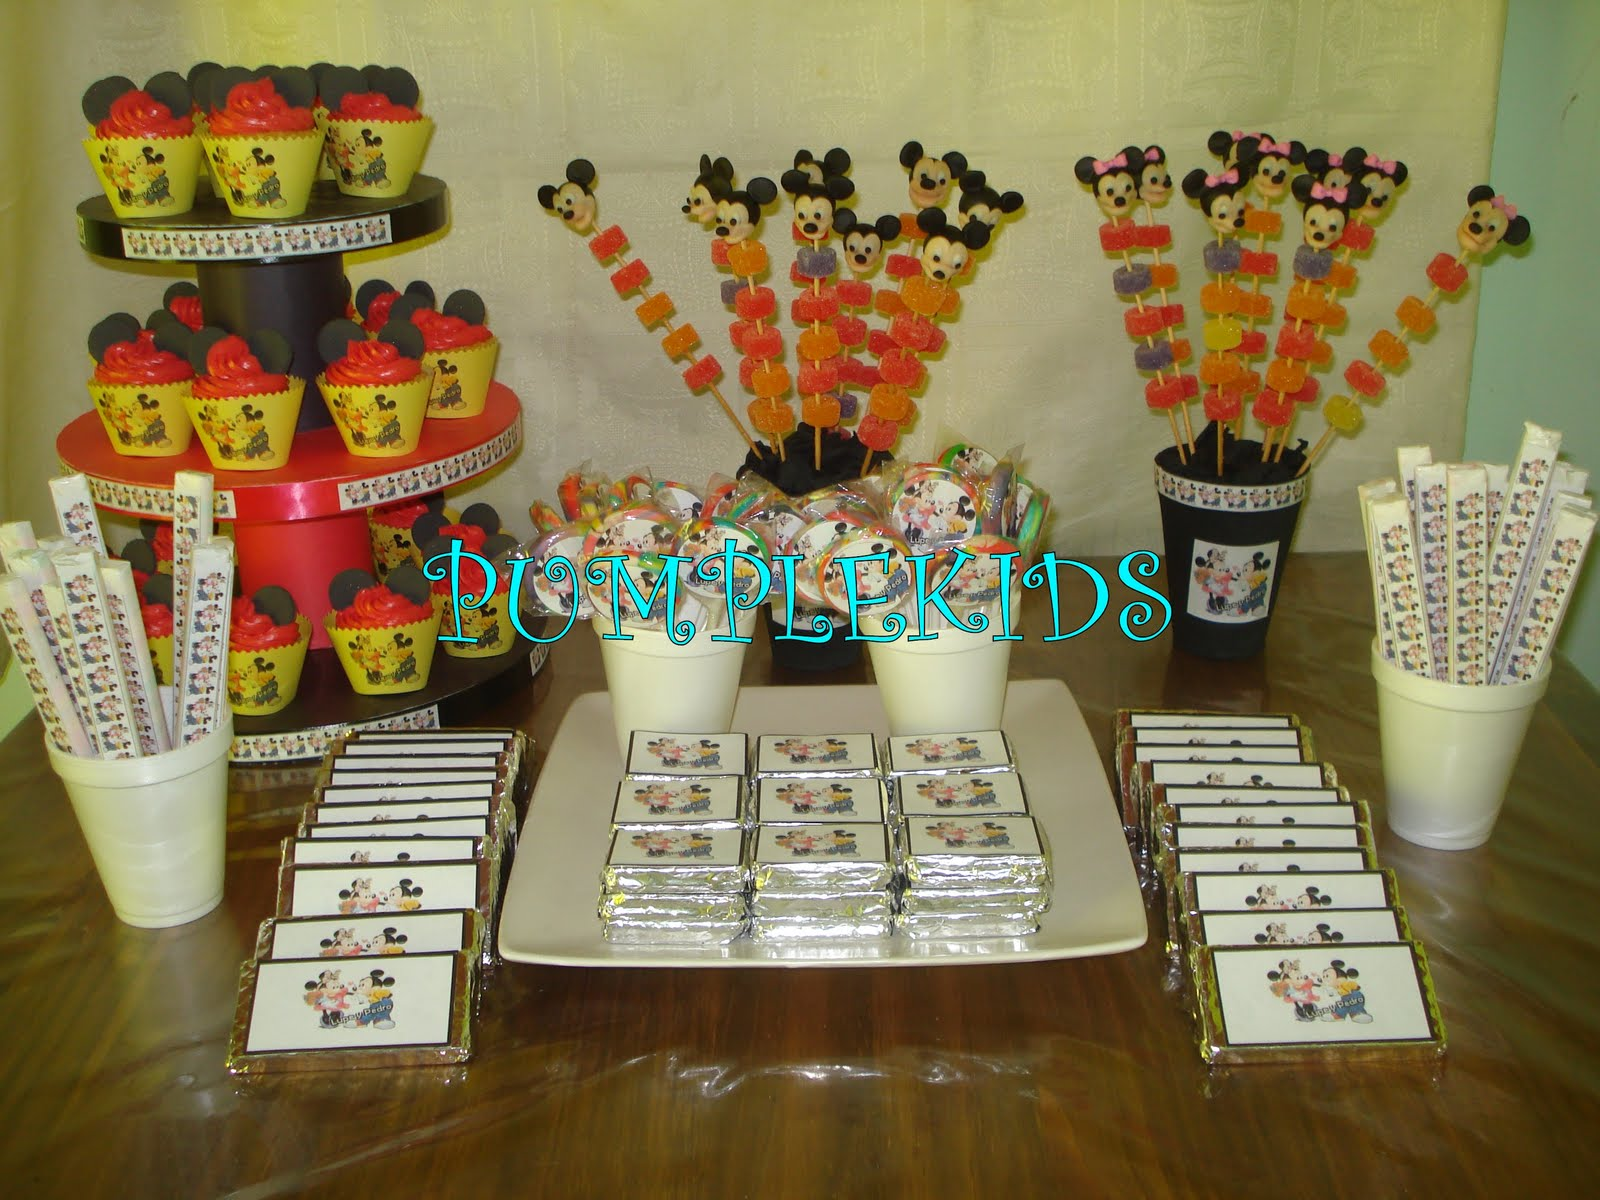 PUMPLEKIDS: TEMATICA MICKEY Y MINNIE